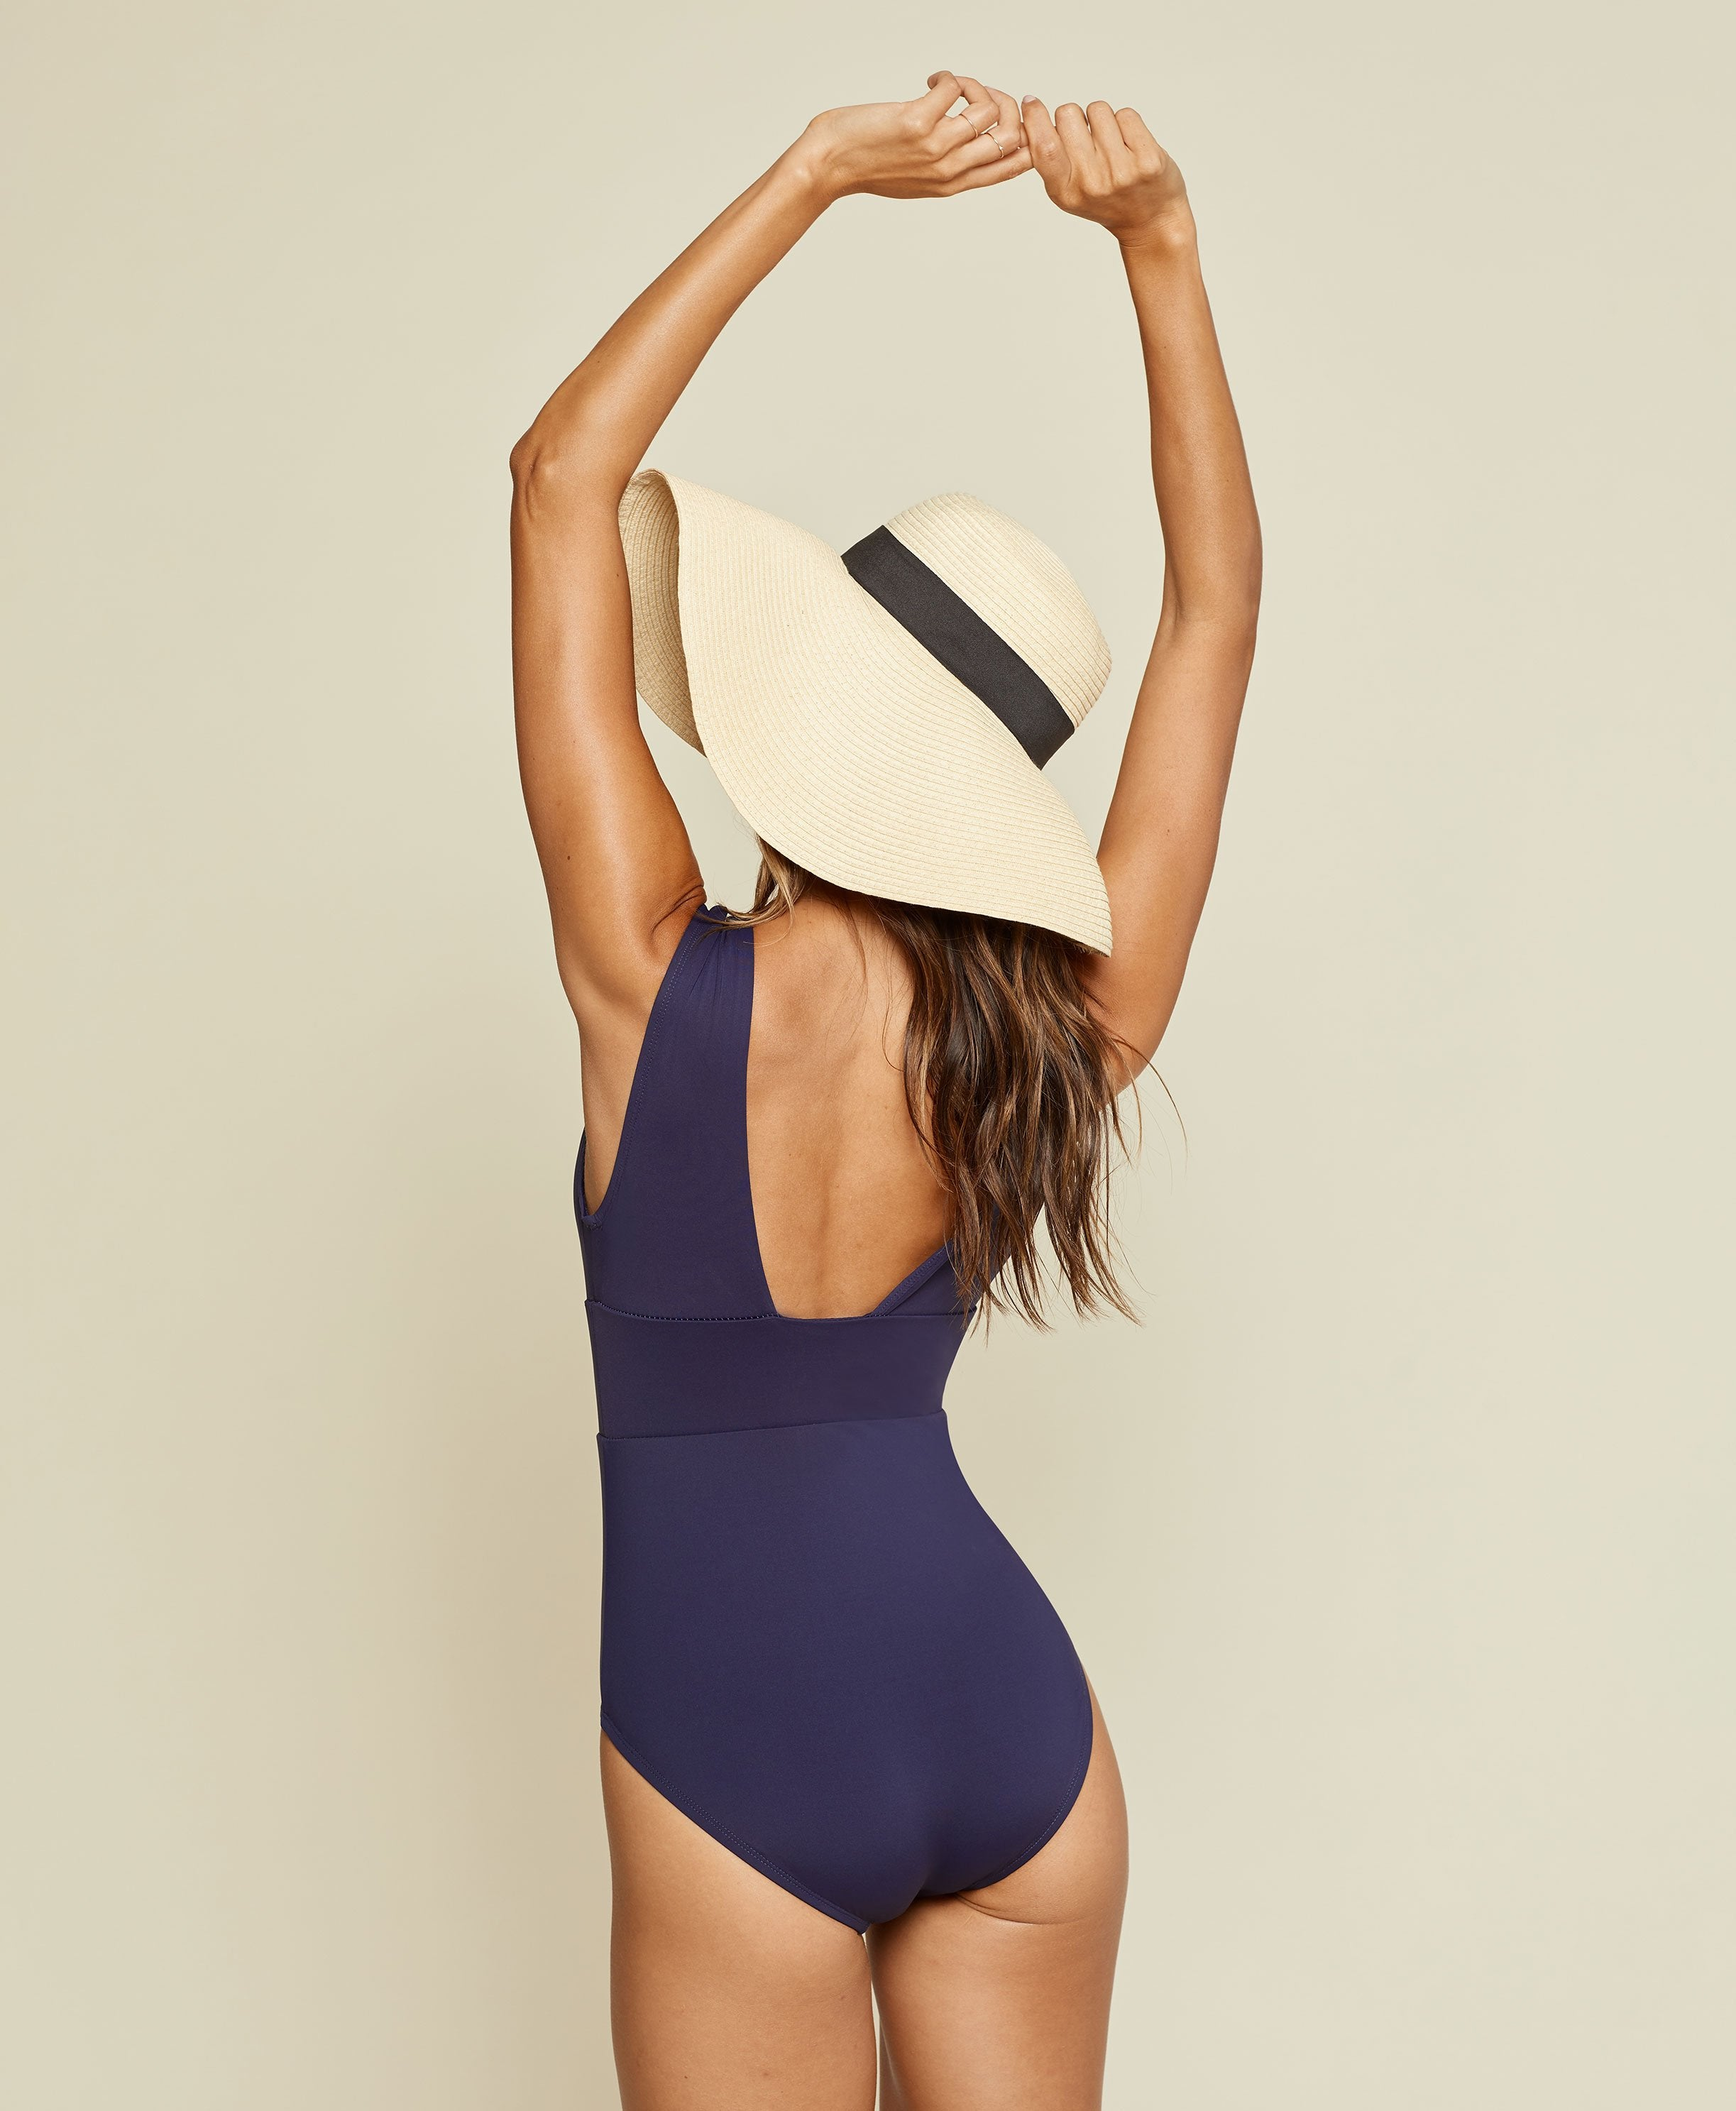 The Mykonos - Flat - Navy - Classic